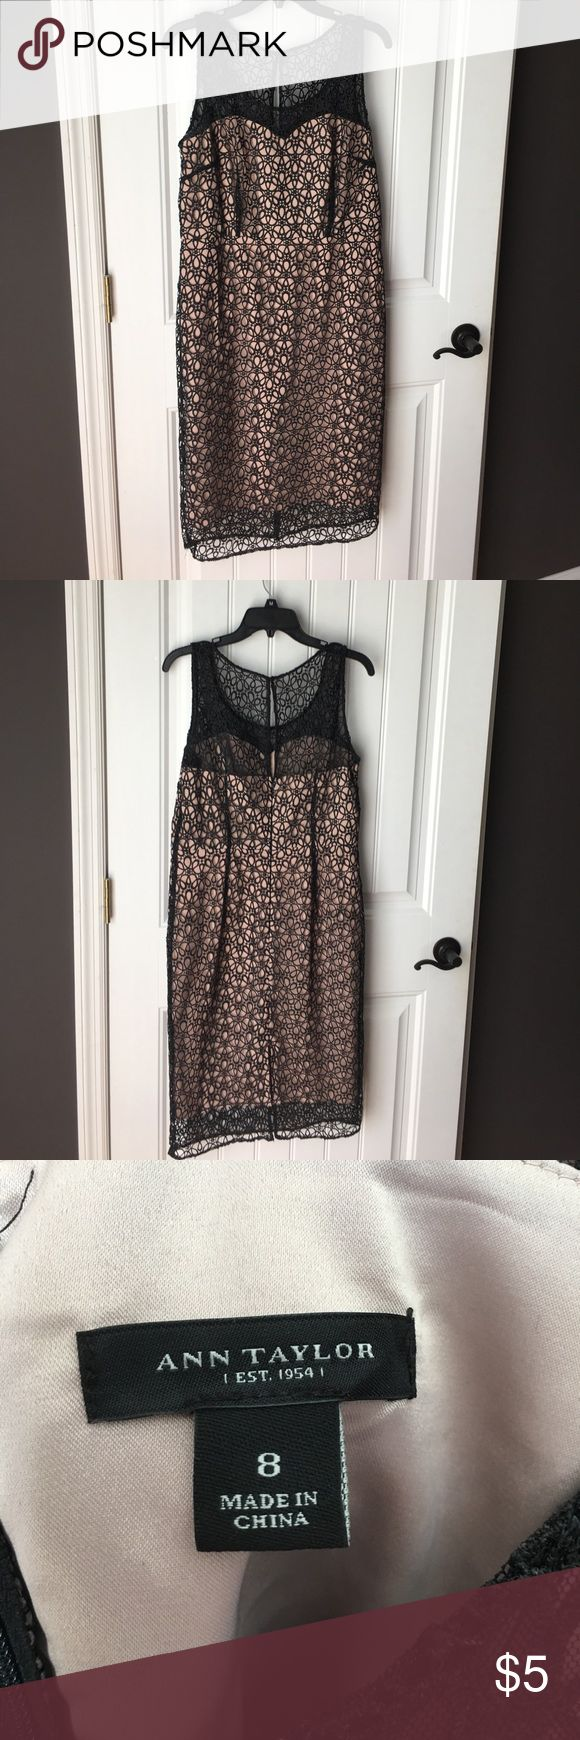 Ann Taylor Cocktail Dress Beautiful black lace cocktail dress with nude lining. Perfect dress for that perfect occasion. Ann Taylor Dresses Wedding